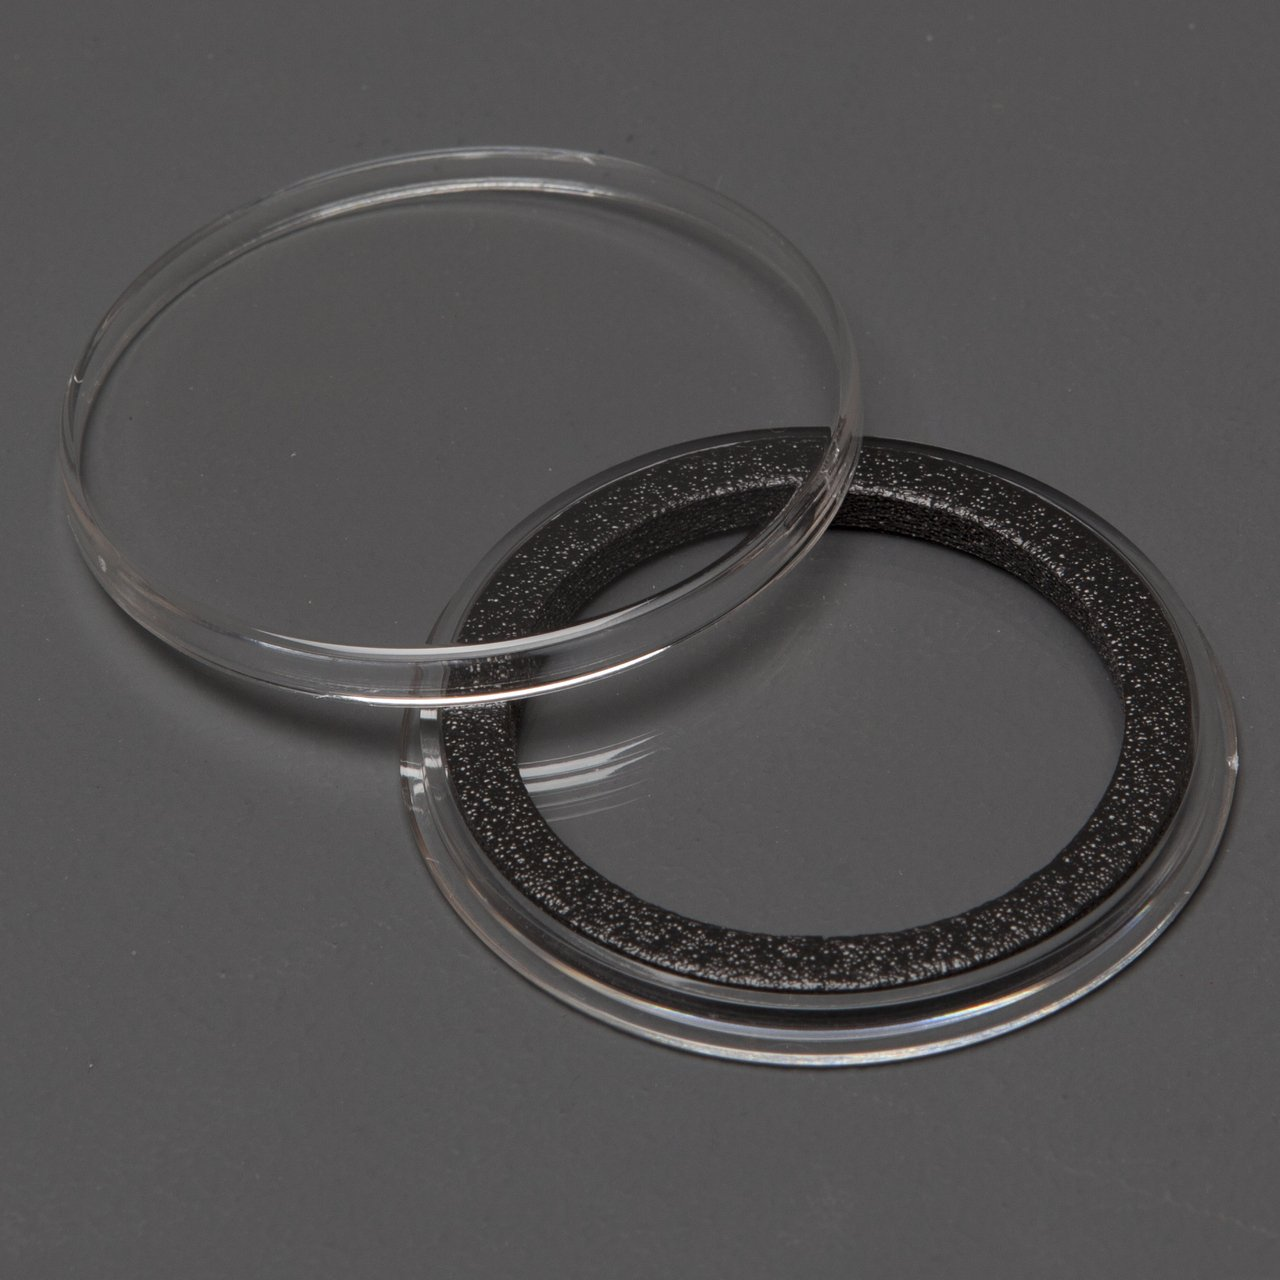 (25) Genuine Air-Tite Coin Holders Brand Black Ring Type Coin Capsules Protect your Valuable Silver, Gold, Platinum, Challenge, and Medallion Coins with our Crystal Clear Protective Holders (38mm Black Ring)